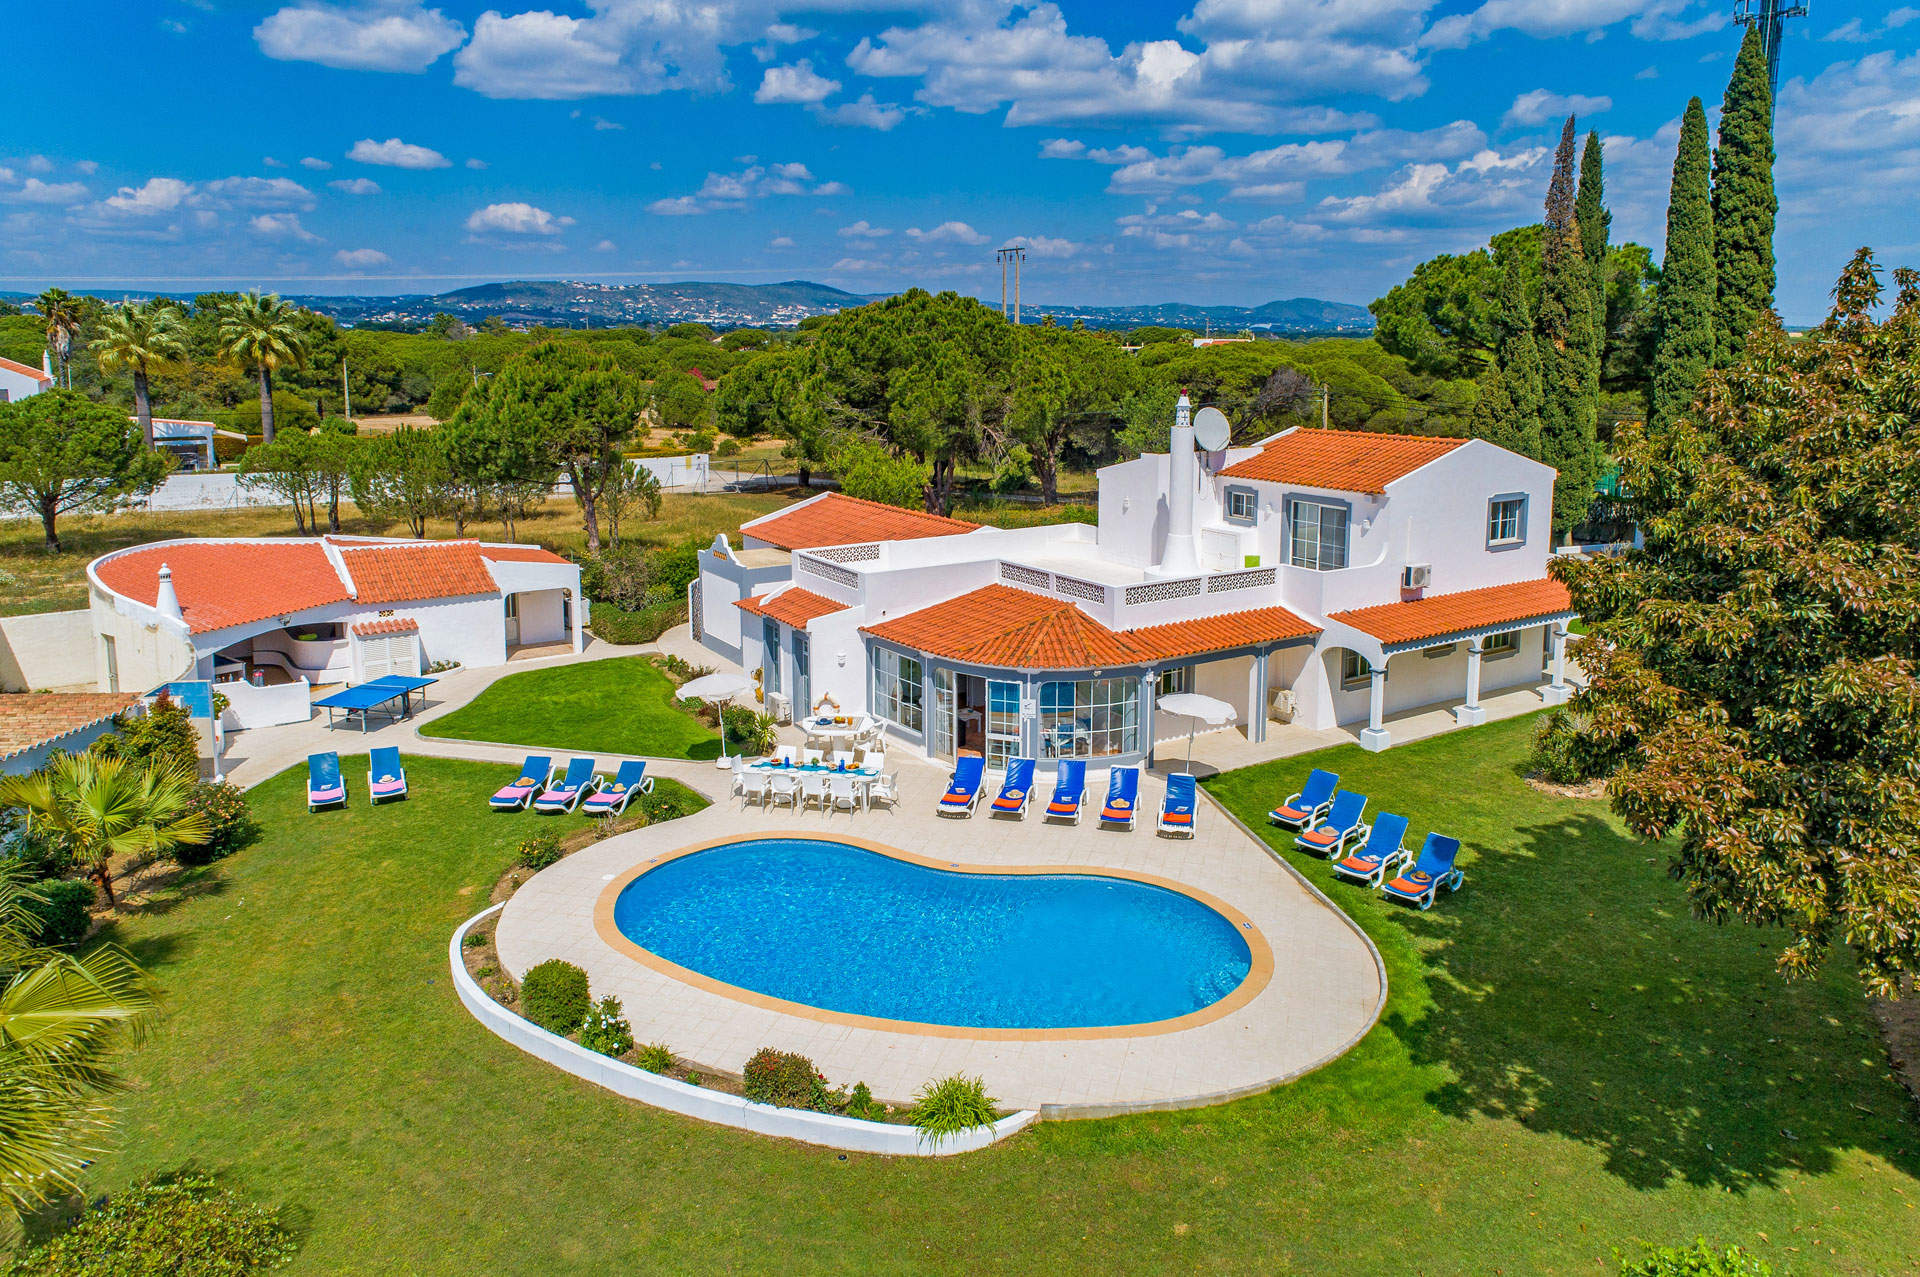 Villa Talefe, Vale do Lobo, Algarve, Portugal